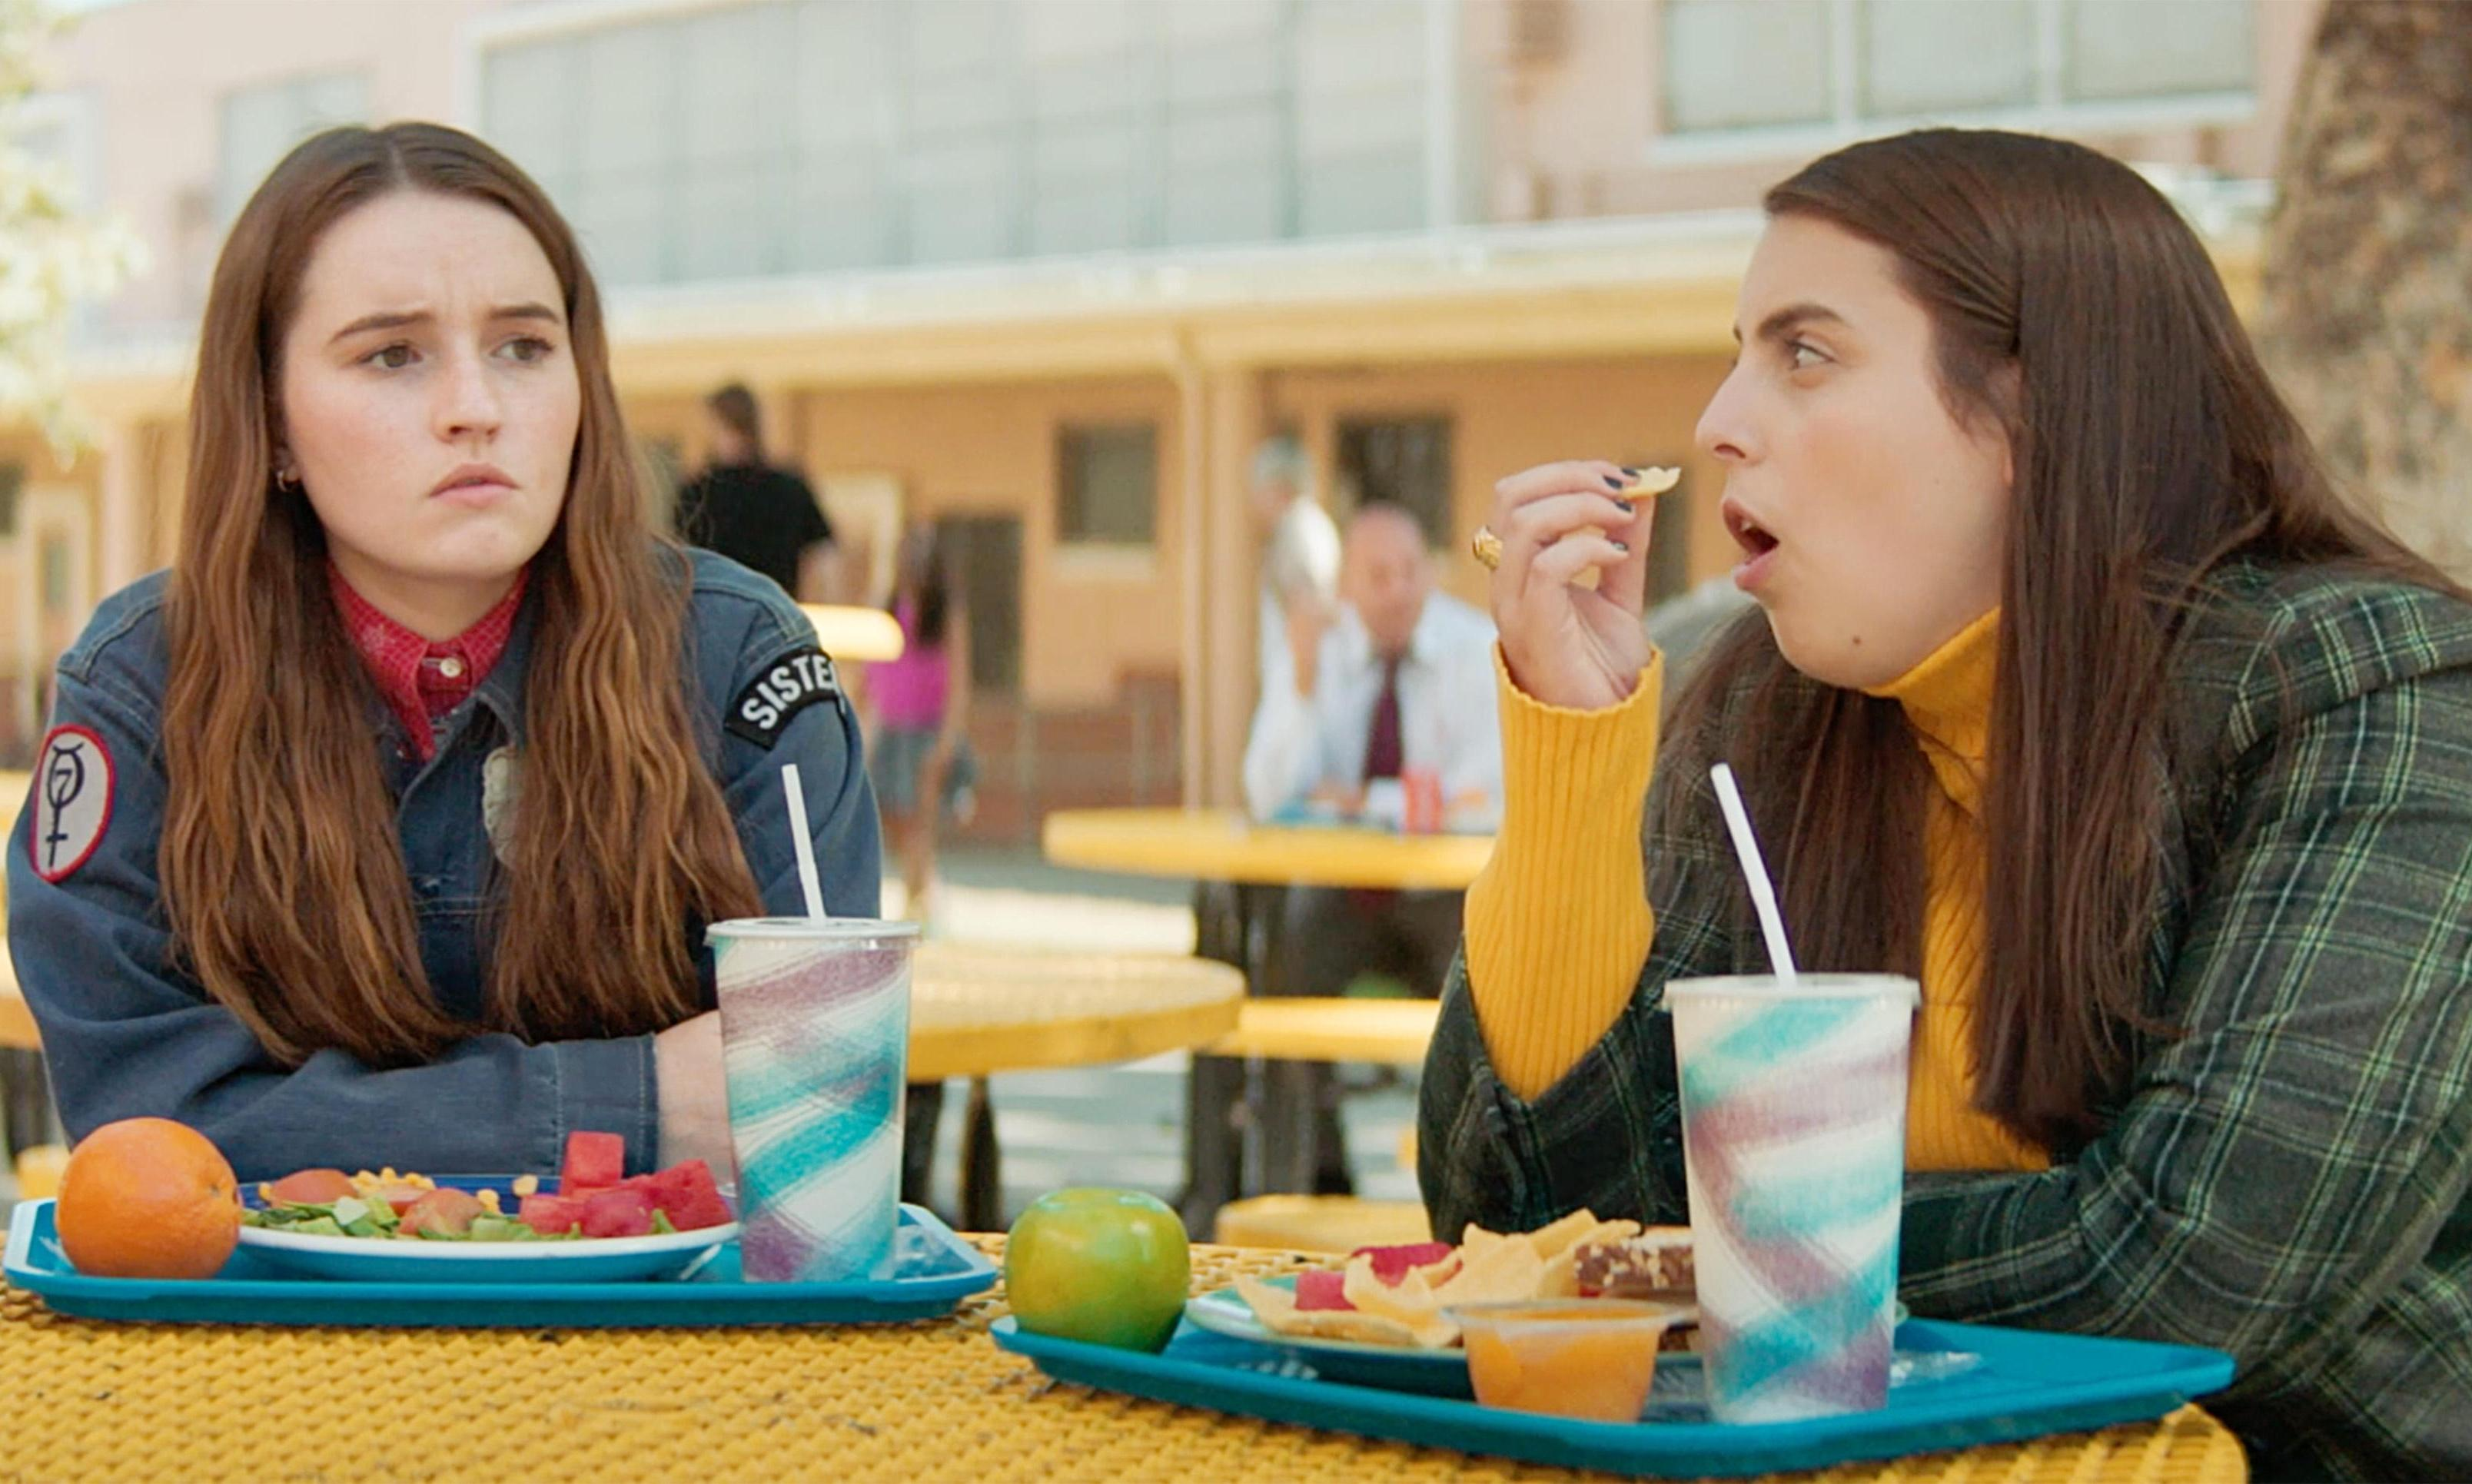 Booksmart review – fast, funny and feminist